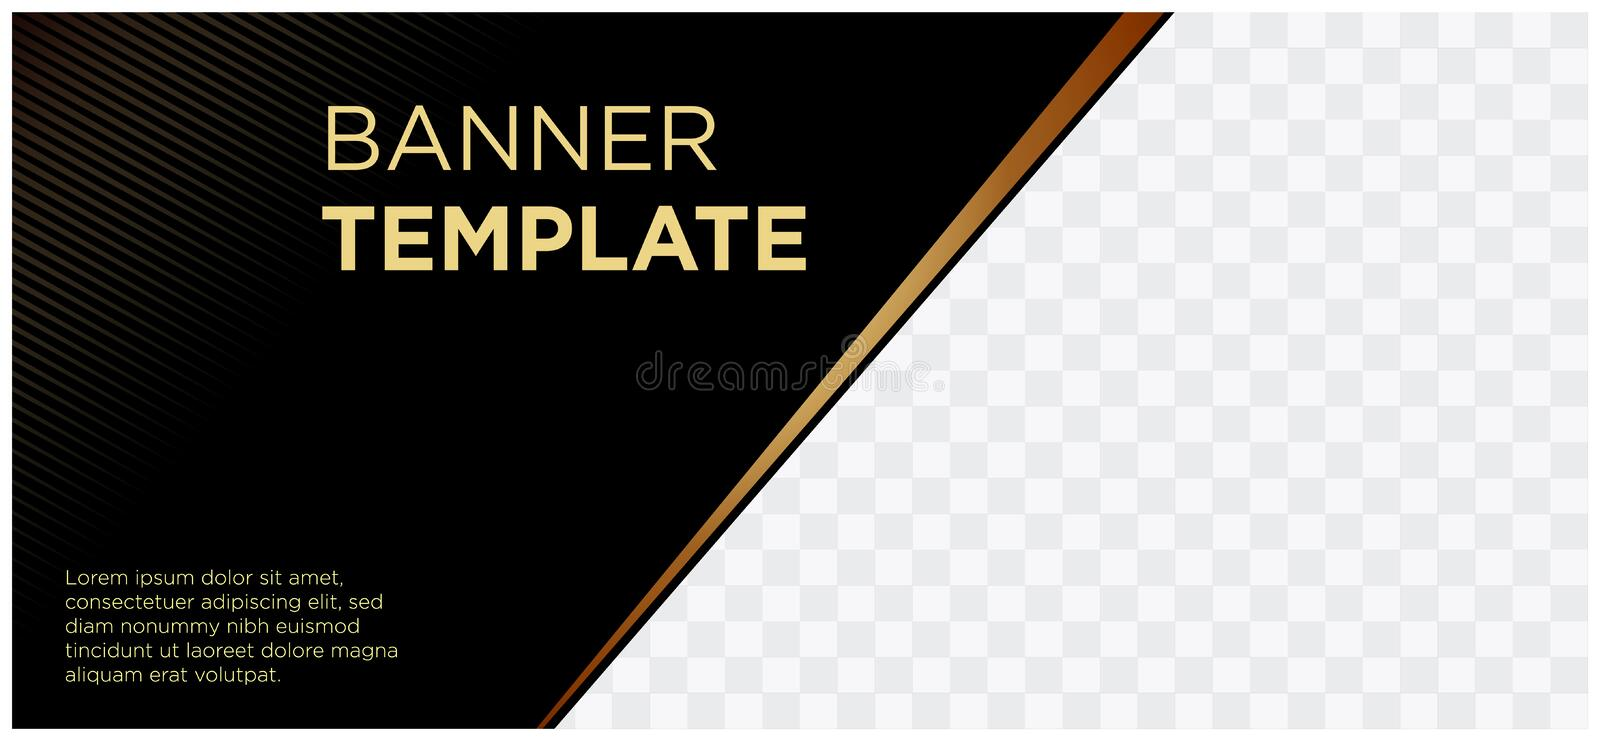 Banners black and gold header website company commercial landscape-06 royalty free illustration